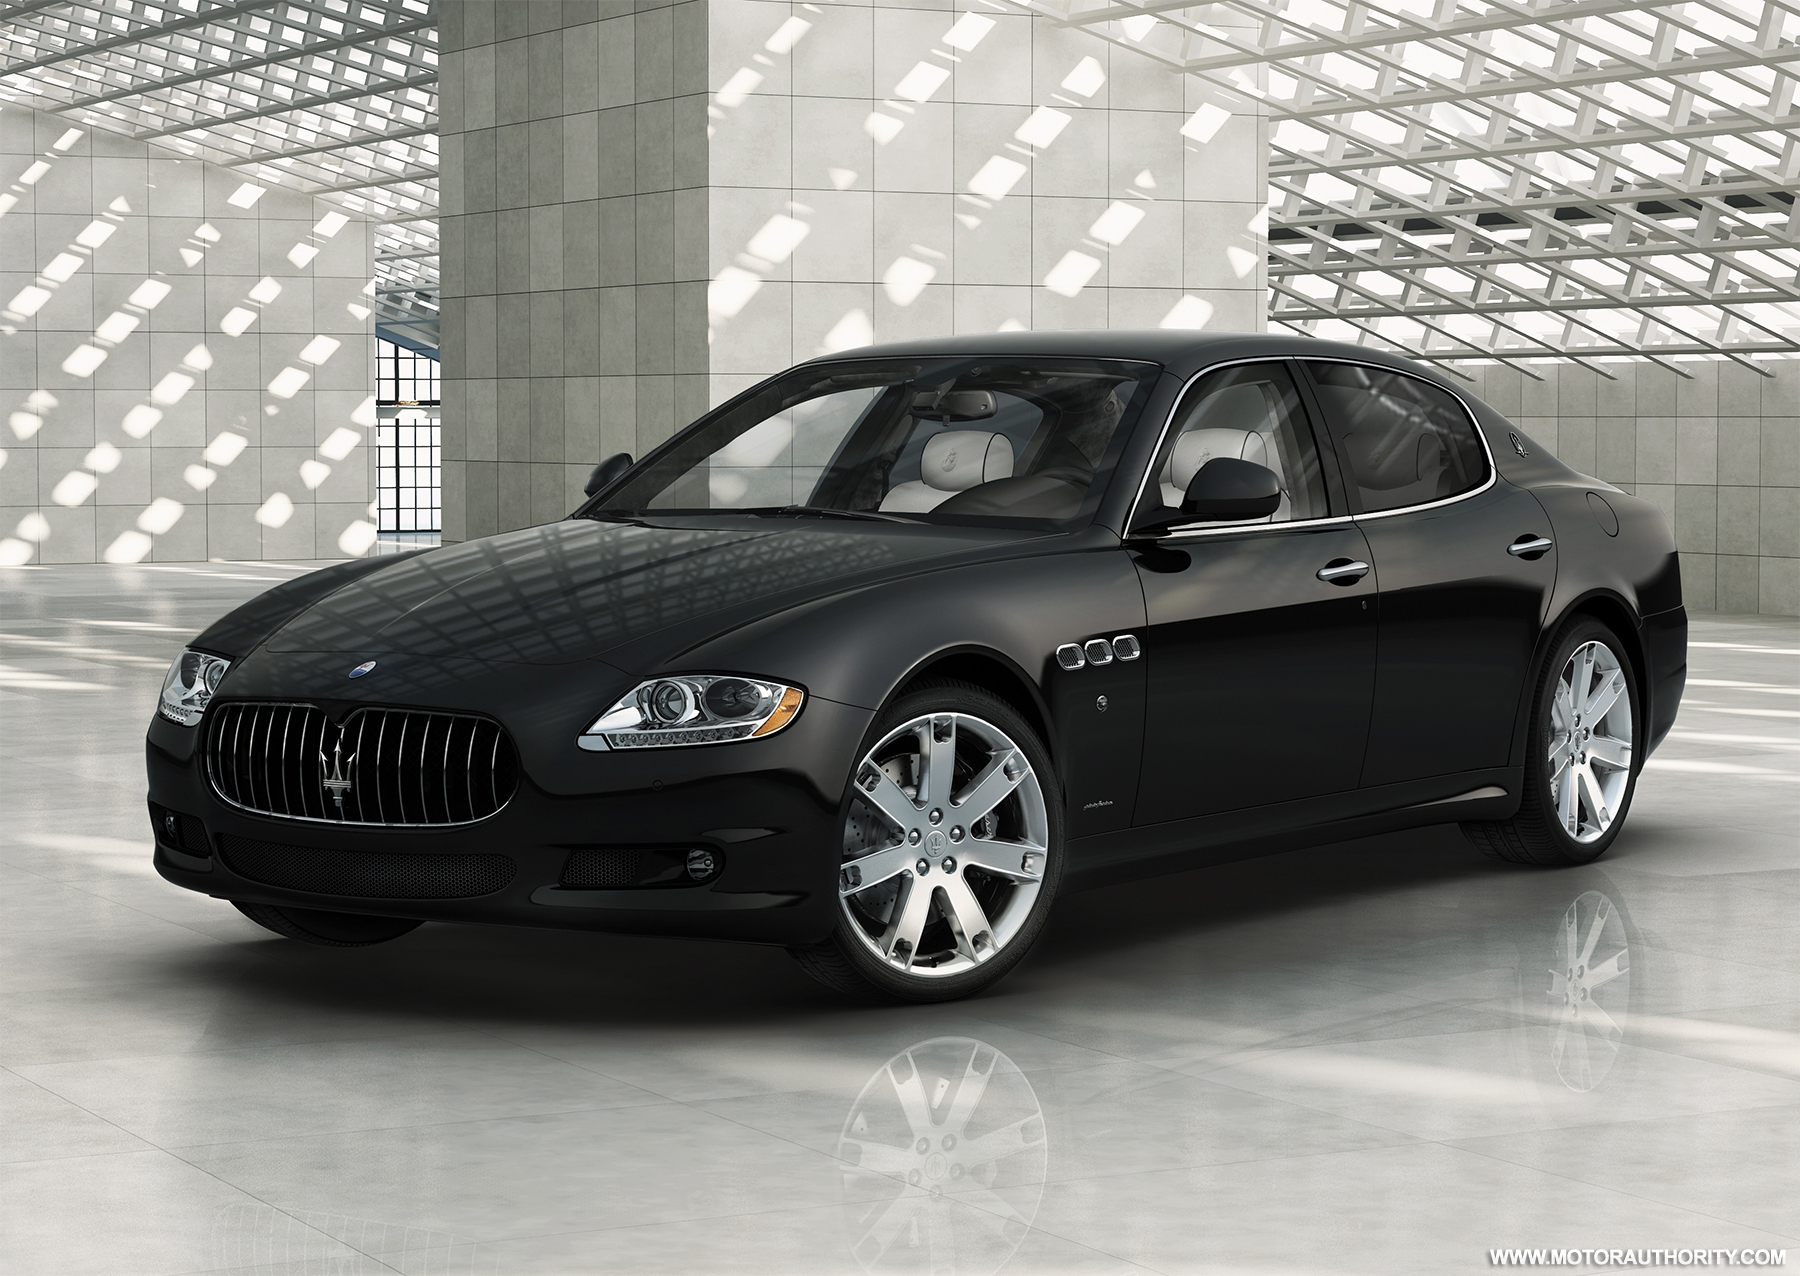 centurion special edition quattroporte honors amex black cardholders. Black Bedroom Furniture Sets. Home Design Ideas